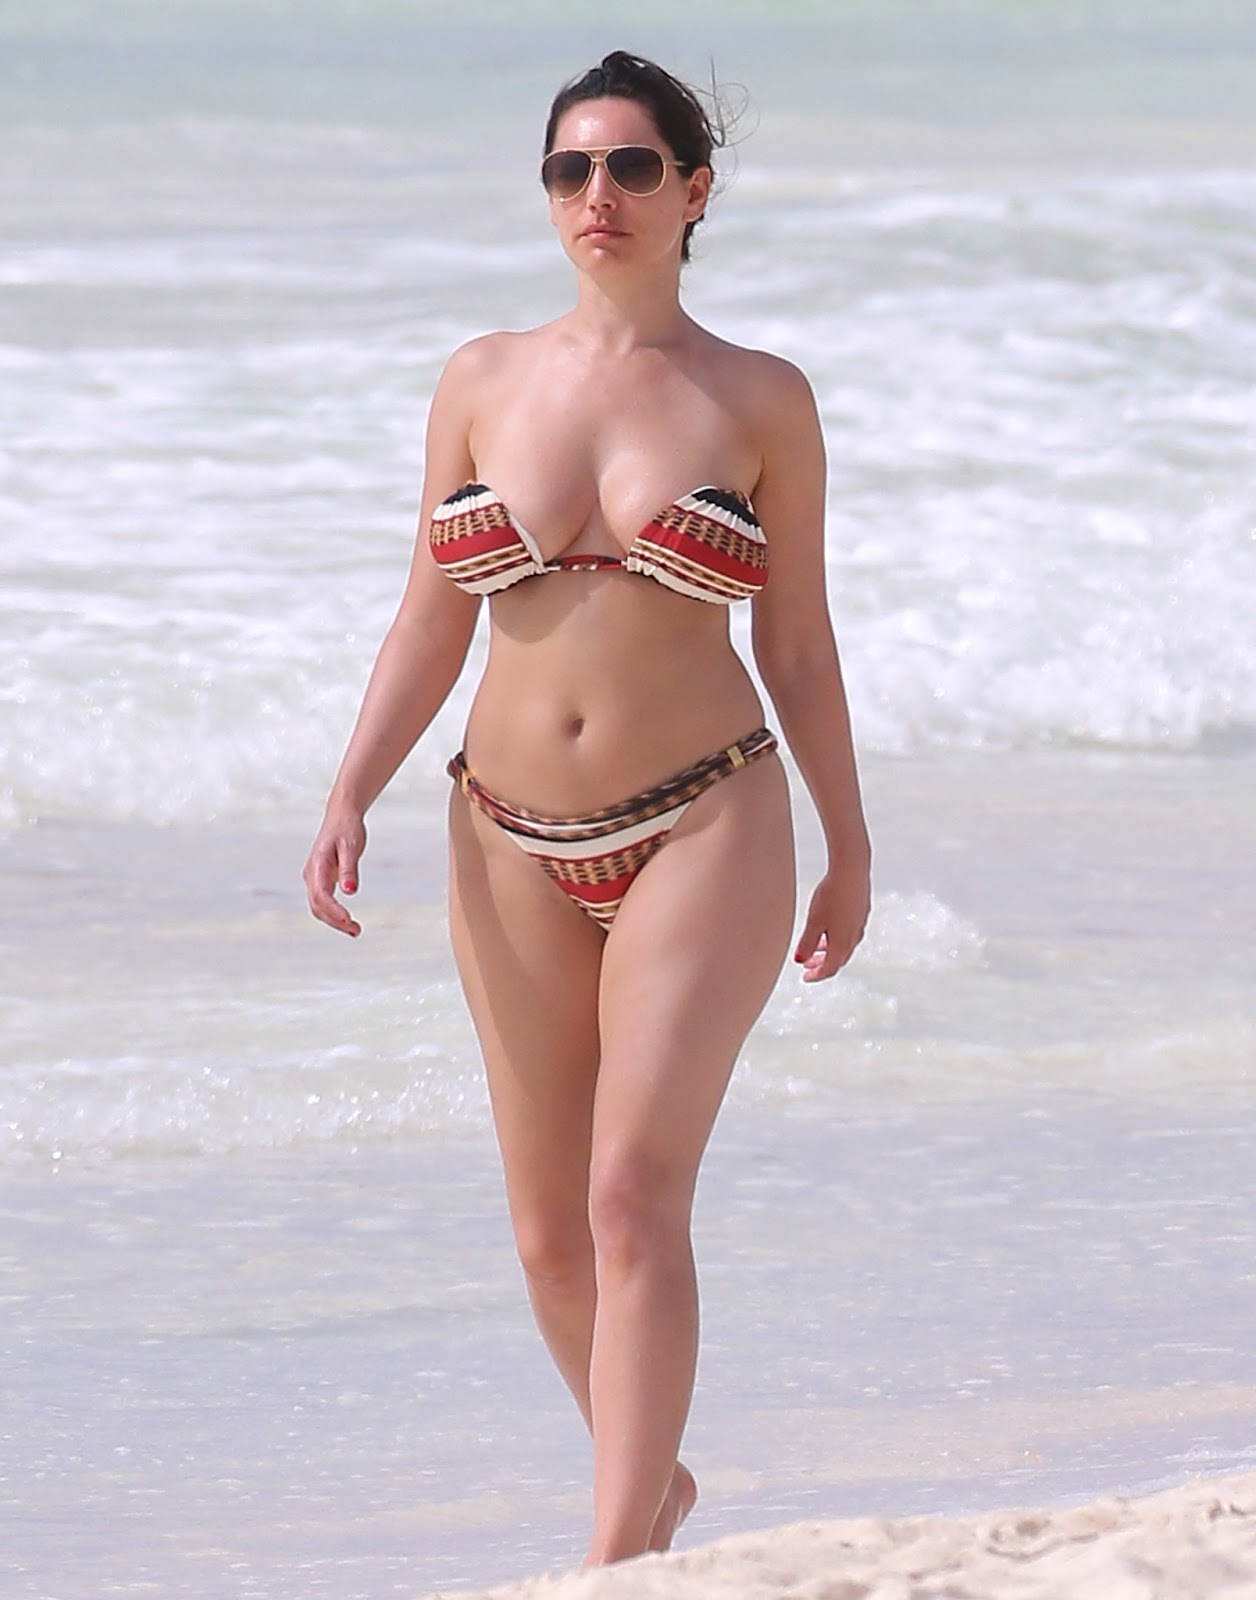 Kelly Brook in Patterned Bikini on the beach in Thailand Pic 1 of 35